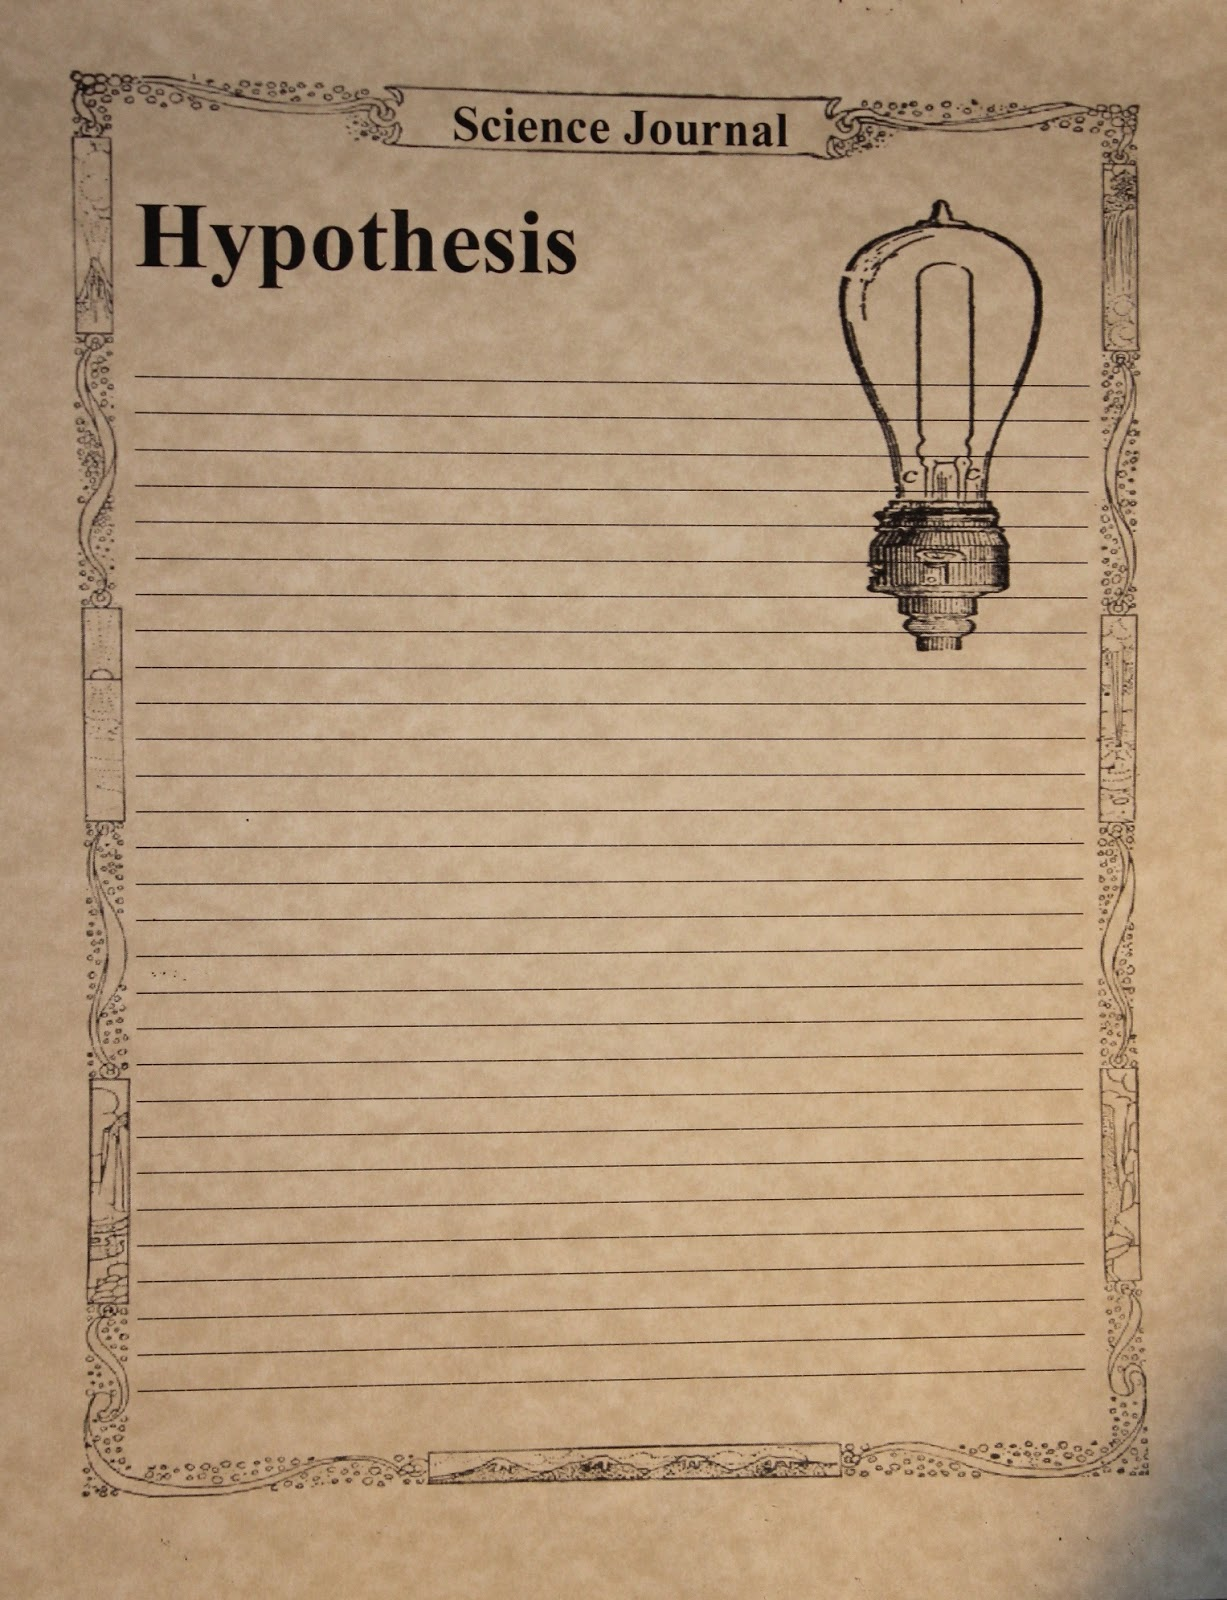 Scientific hypthesis